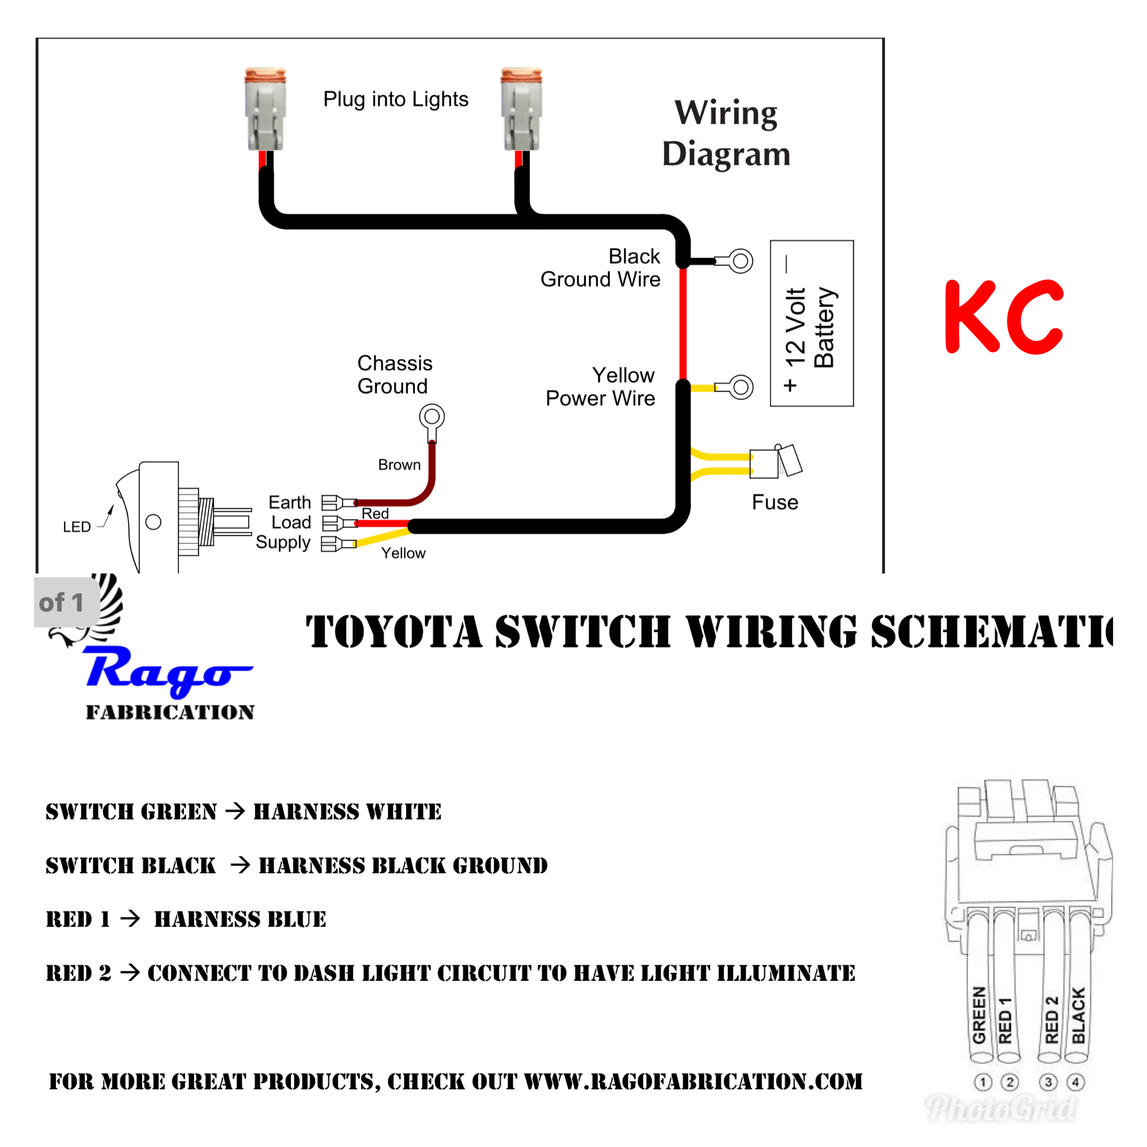 hight resolution of lights switch wiring also led light wiring diagram further kc light kc headlight wiring diagram rago